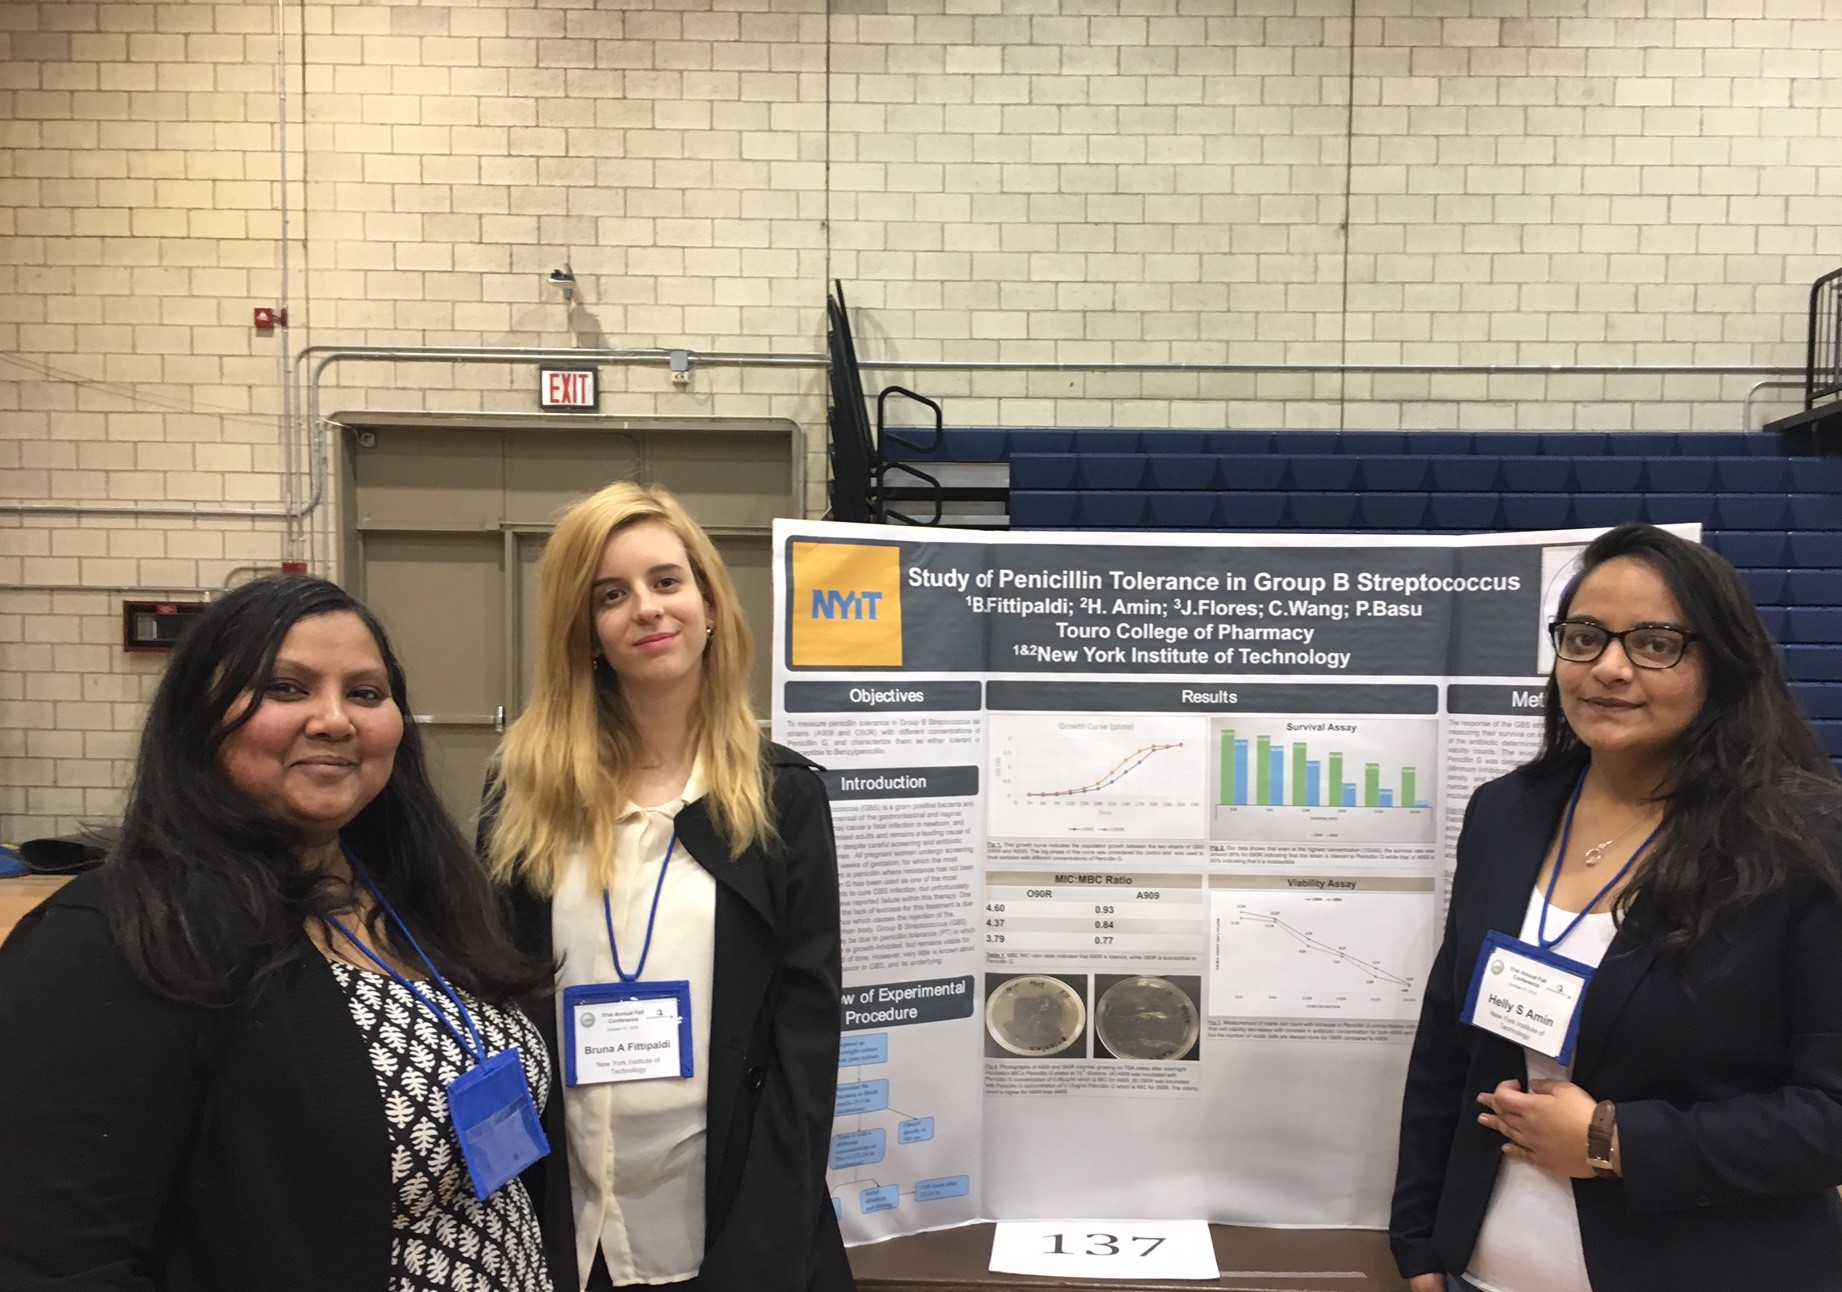 Bruna Fittipaldi and Helly Amin with mentor Dr. Paramita Basu-Mukherjee present their poster at MACUB 2018